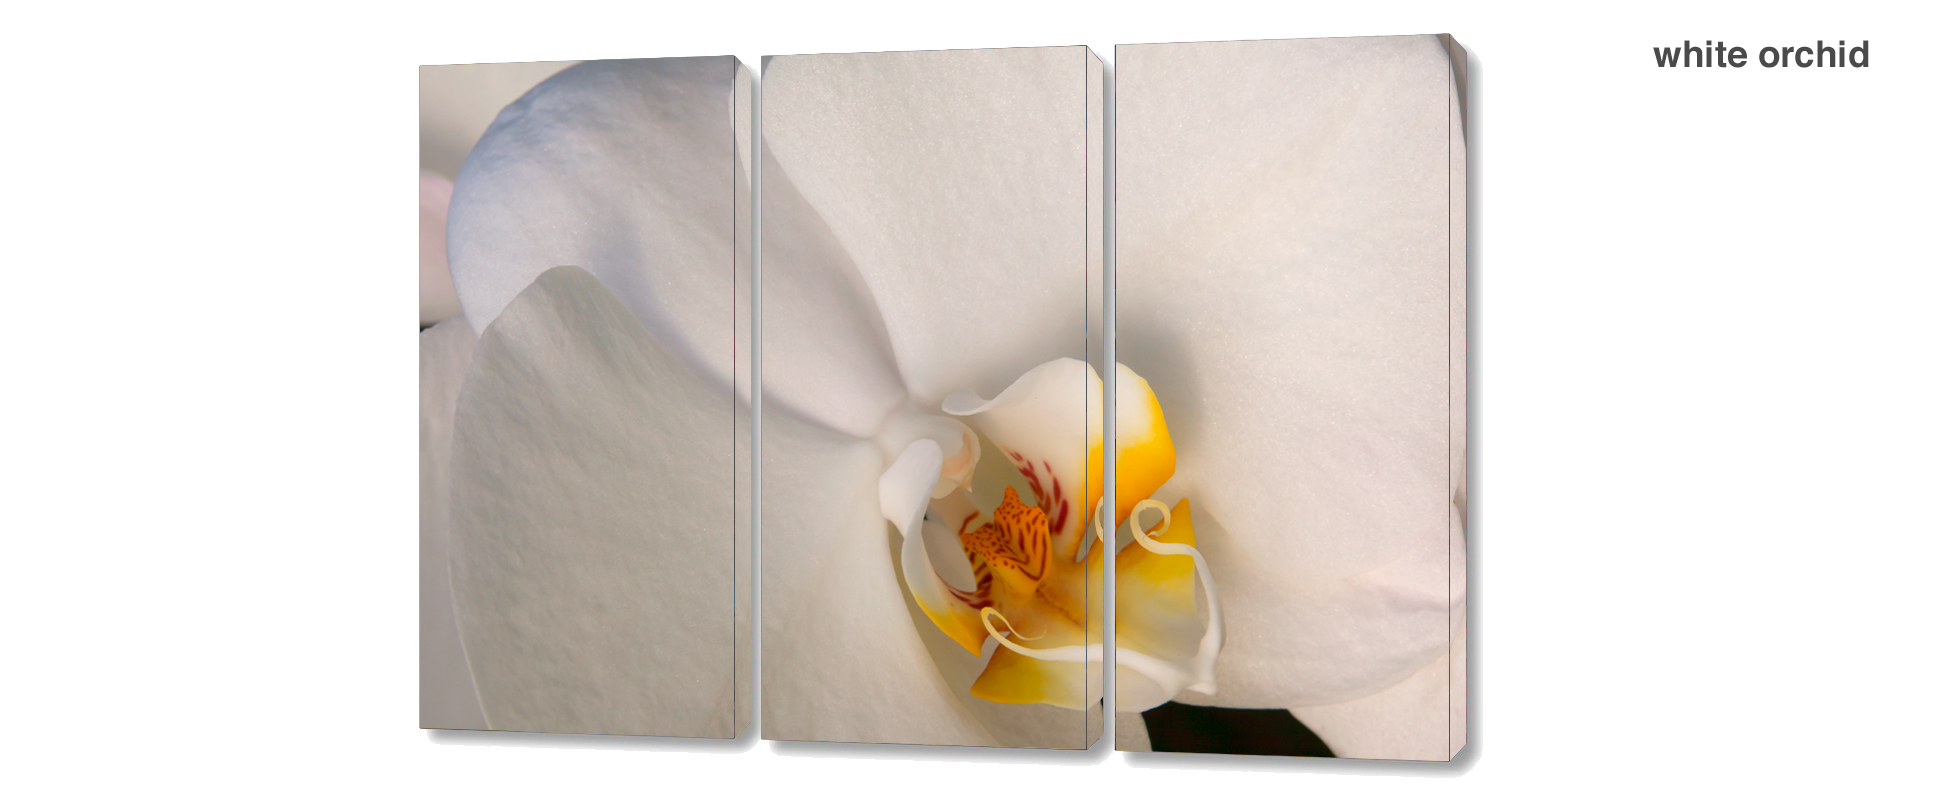 triptych orchid - 3 Piece limited edition giclee canvas floral wall decor